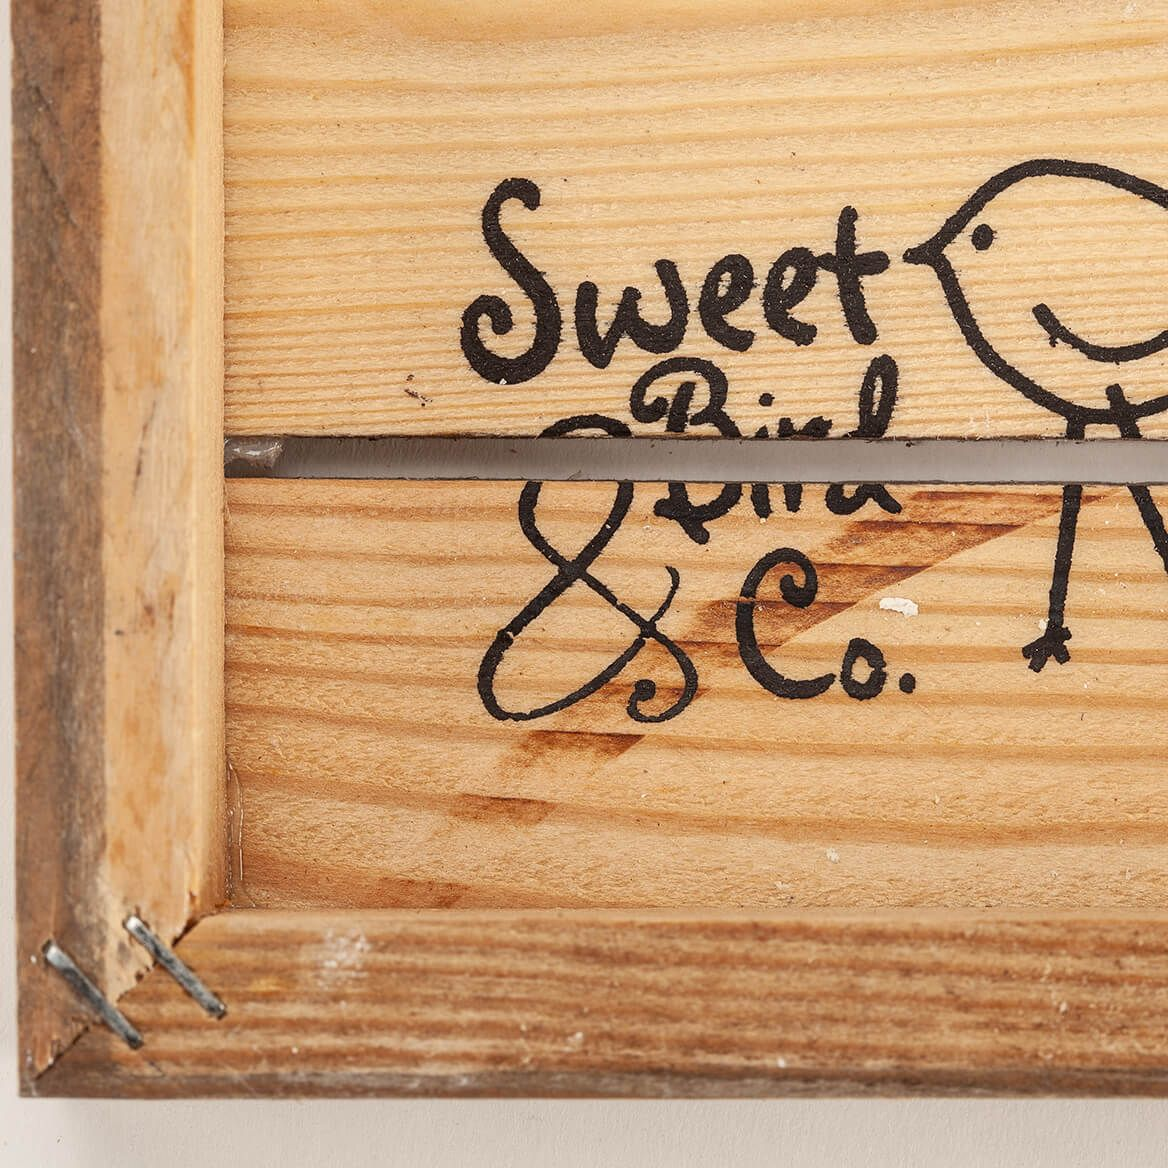 Personalized Happily Ever After Reclaimed Wood Sign by Sweet-367661